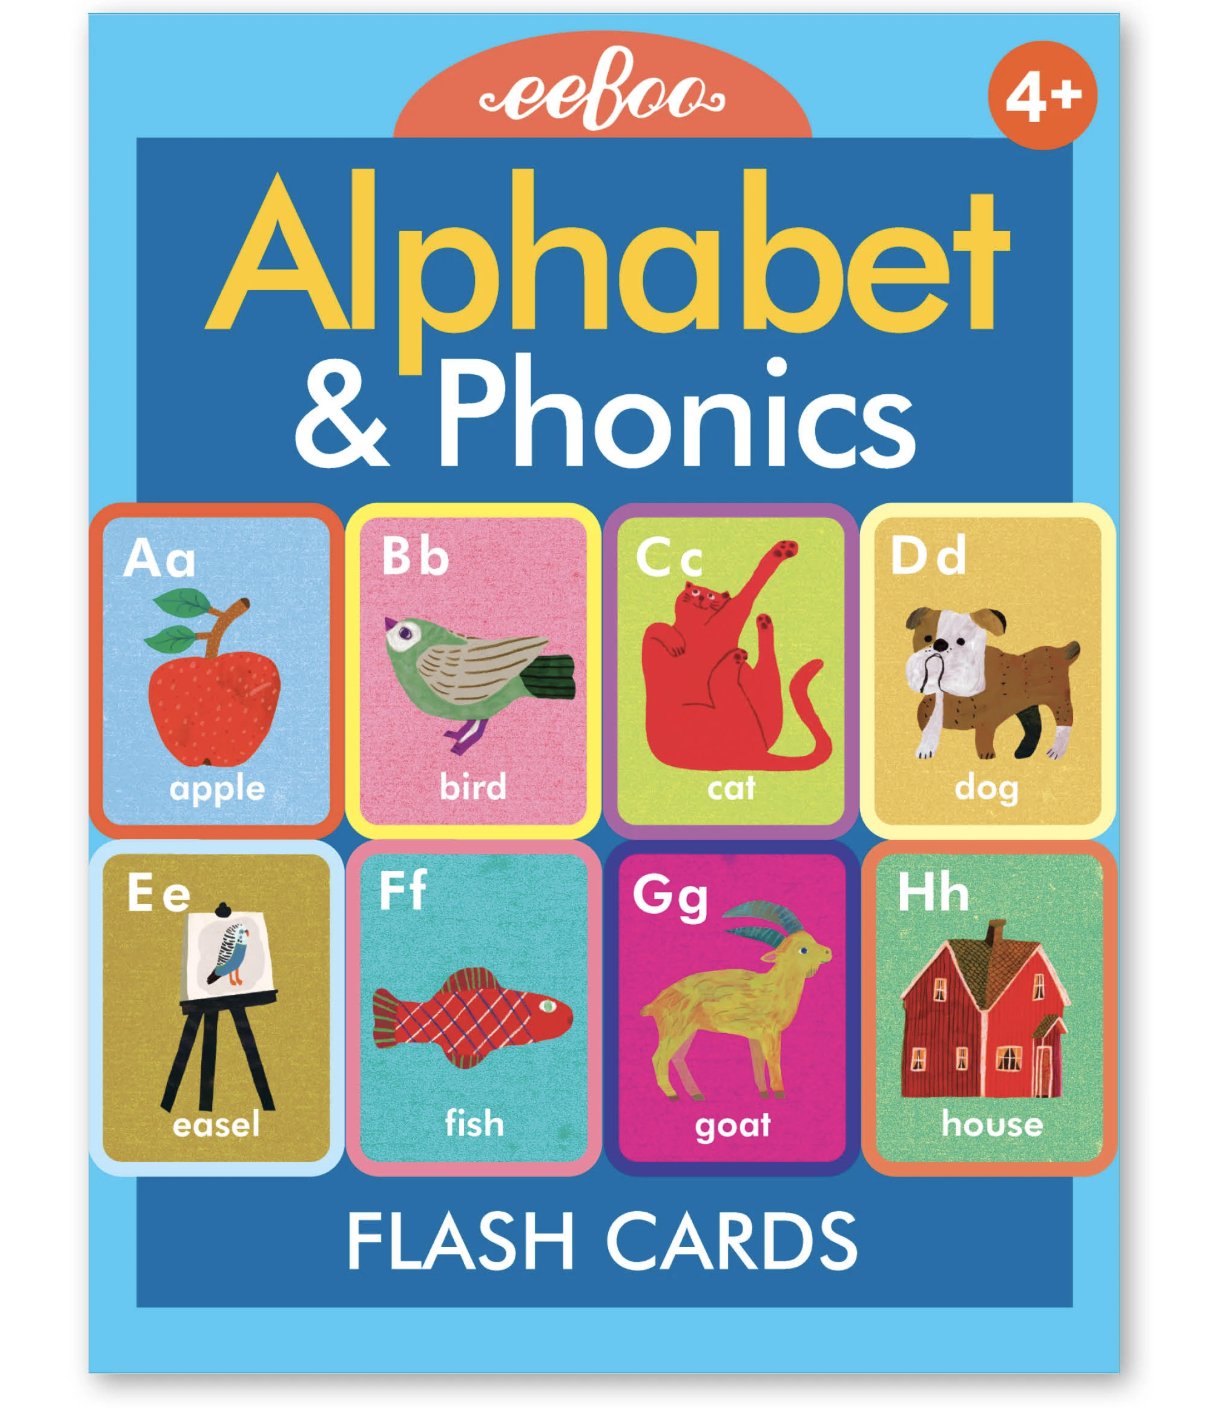 Alphabet & Conversation Flash Cards